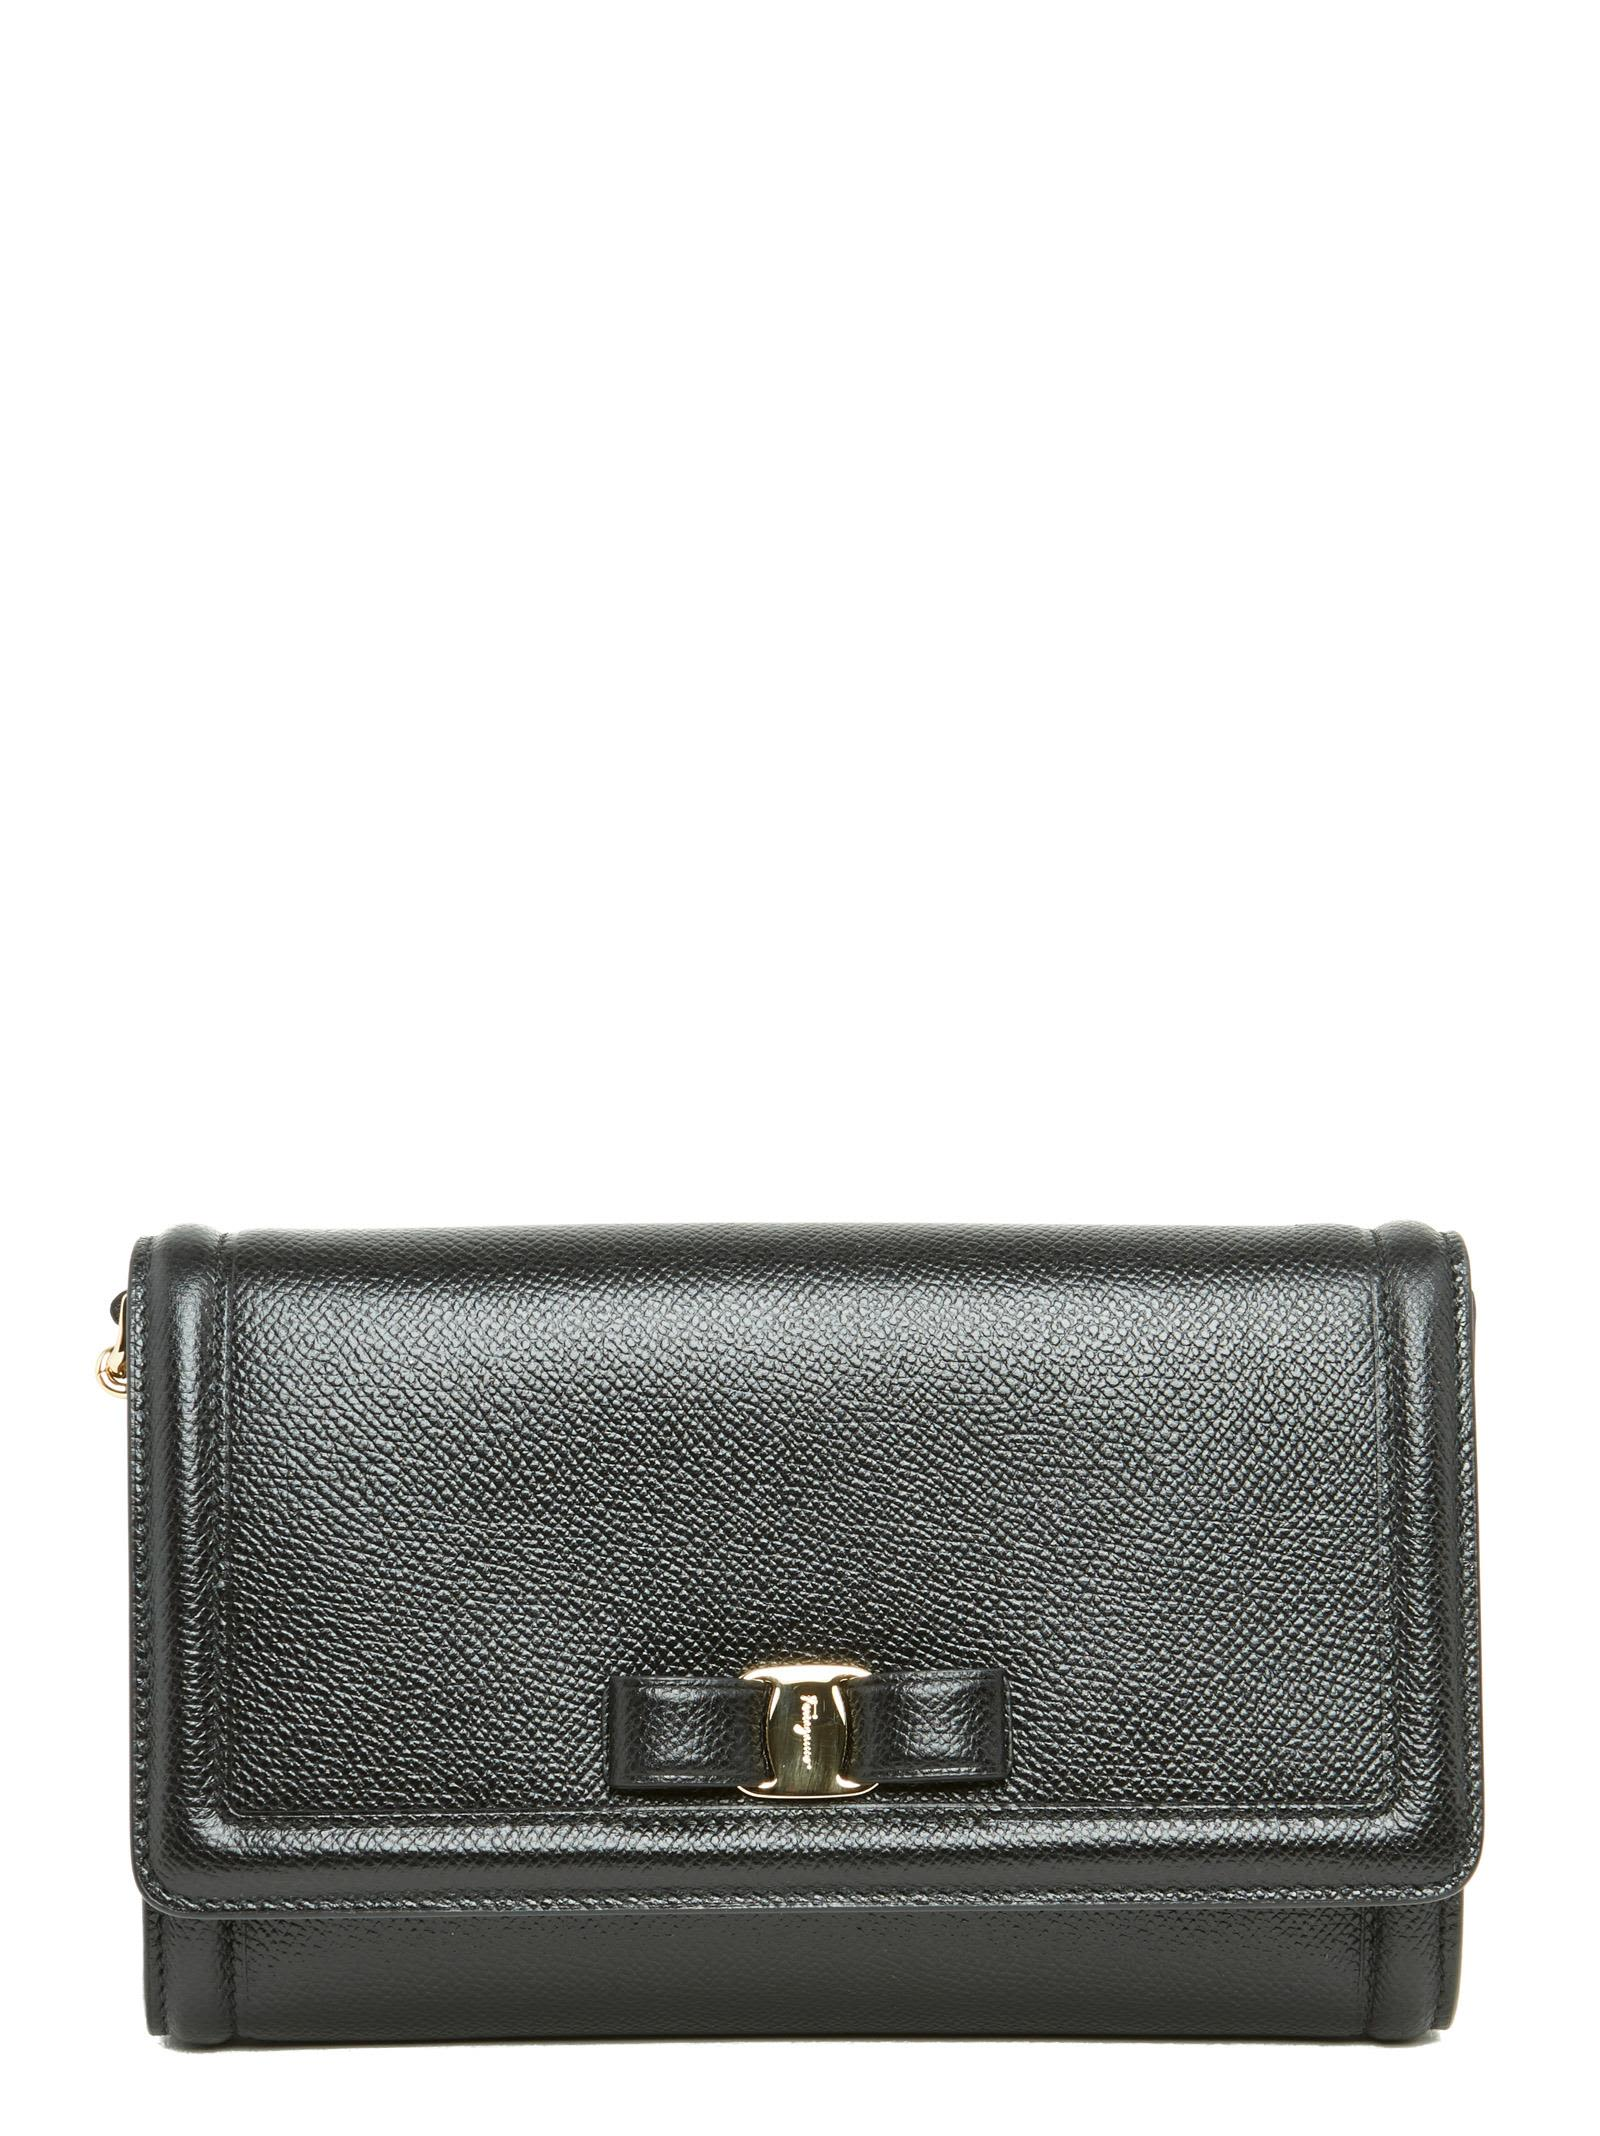 Salvatore Ferragamo 033 clutch